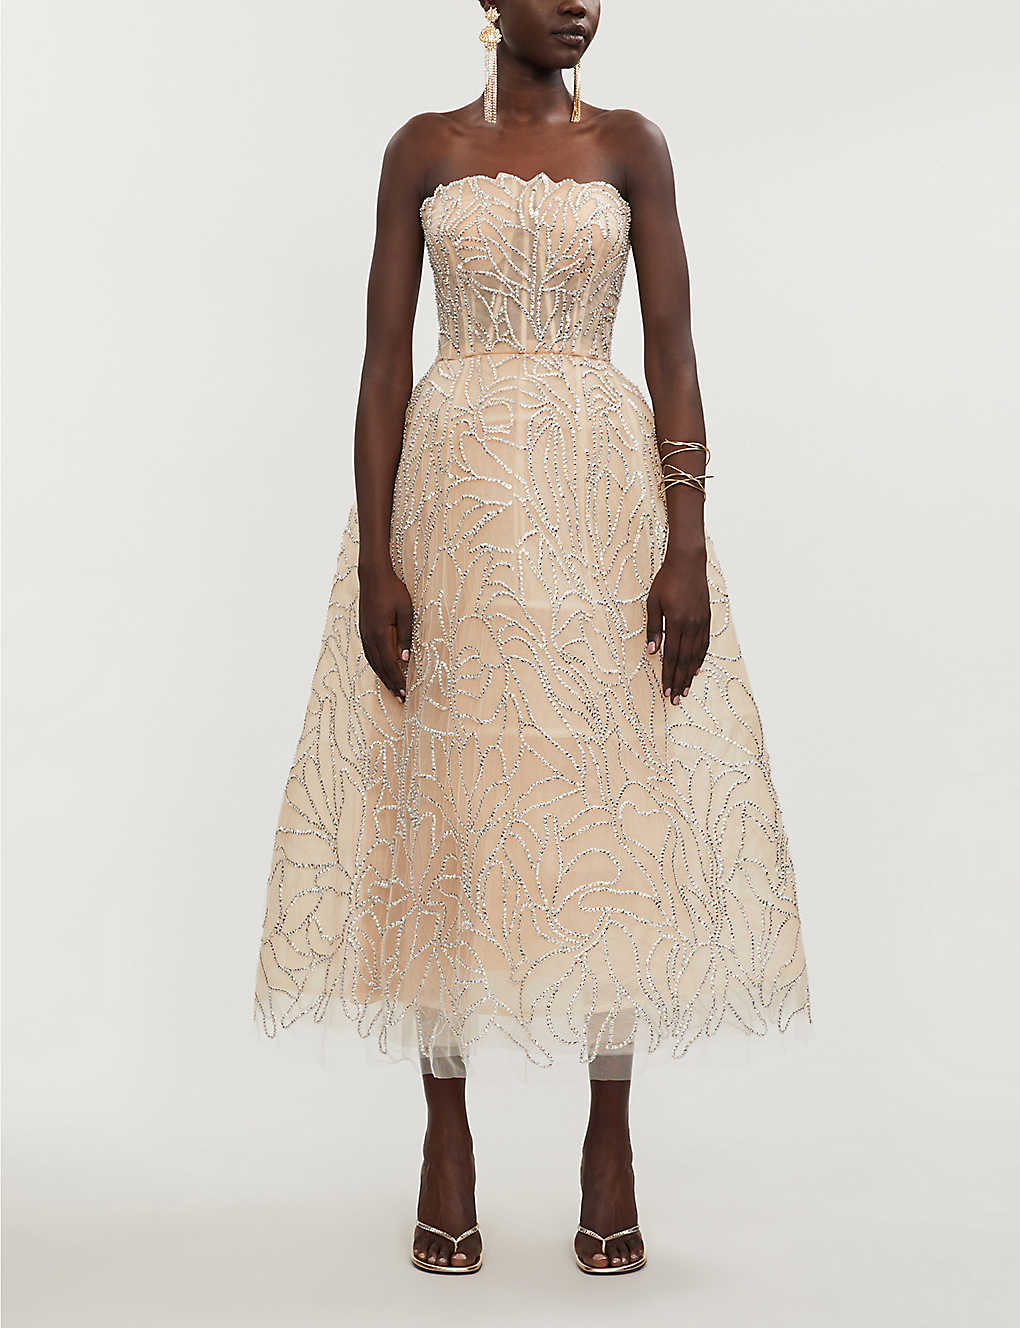 OSCAR DE LA RENTA Embellished Tulle Midi Dress